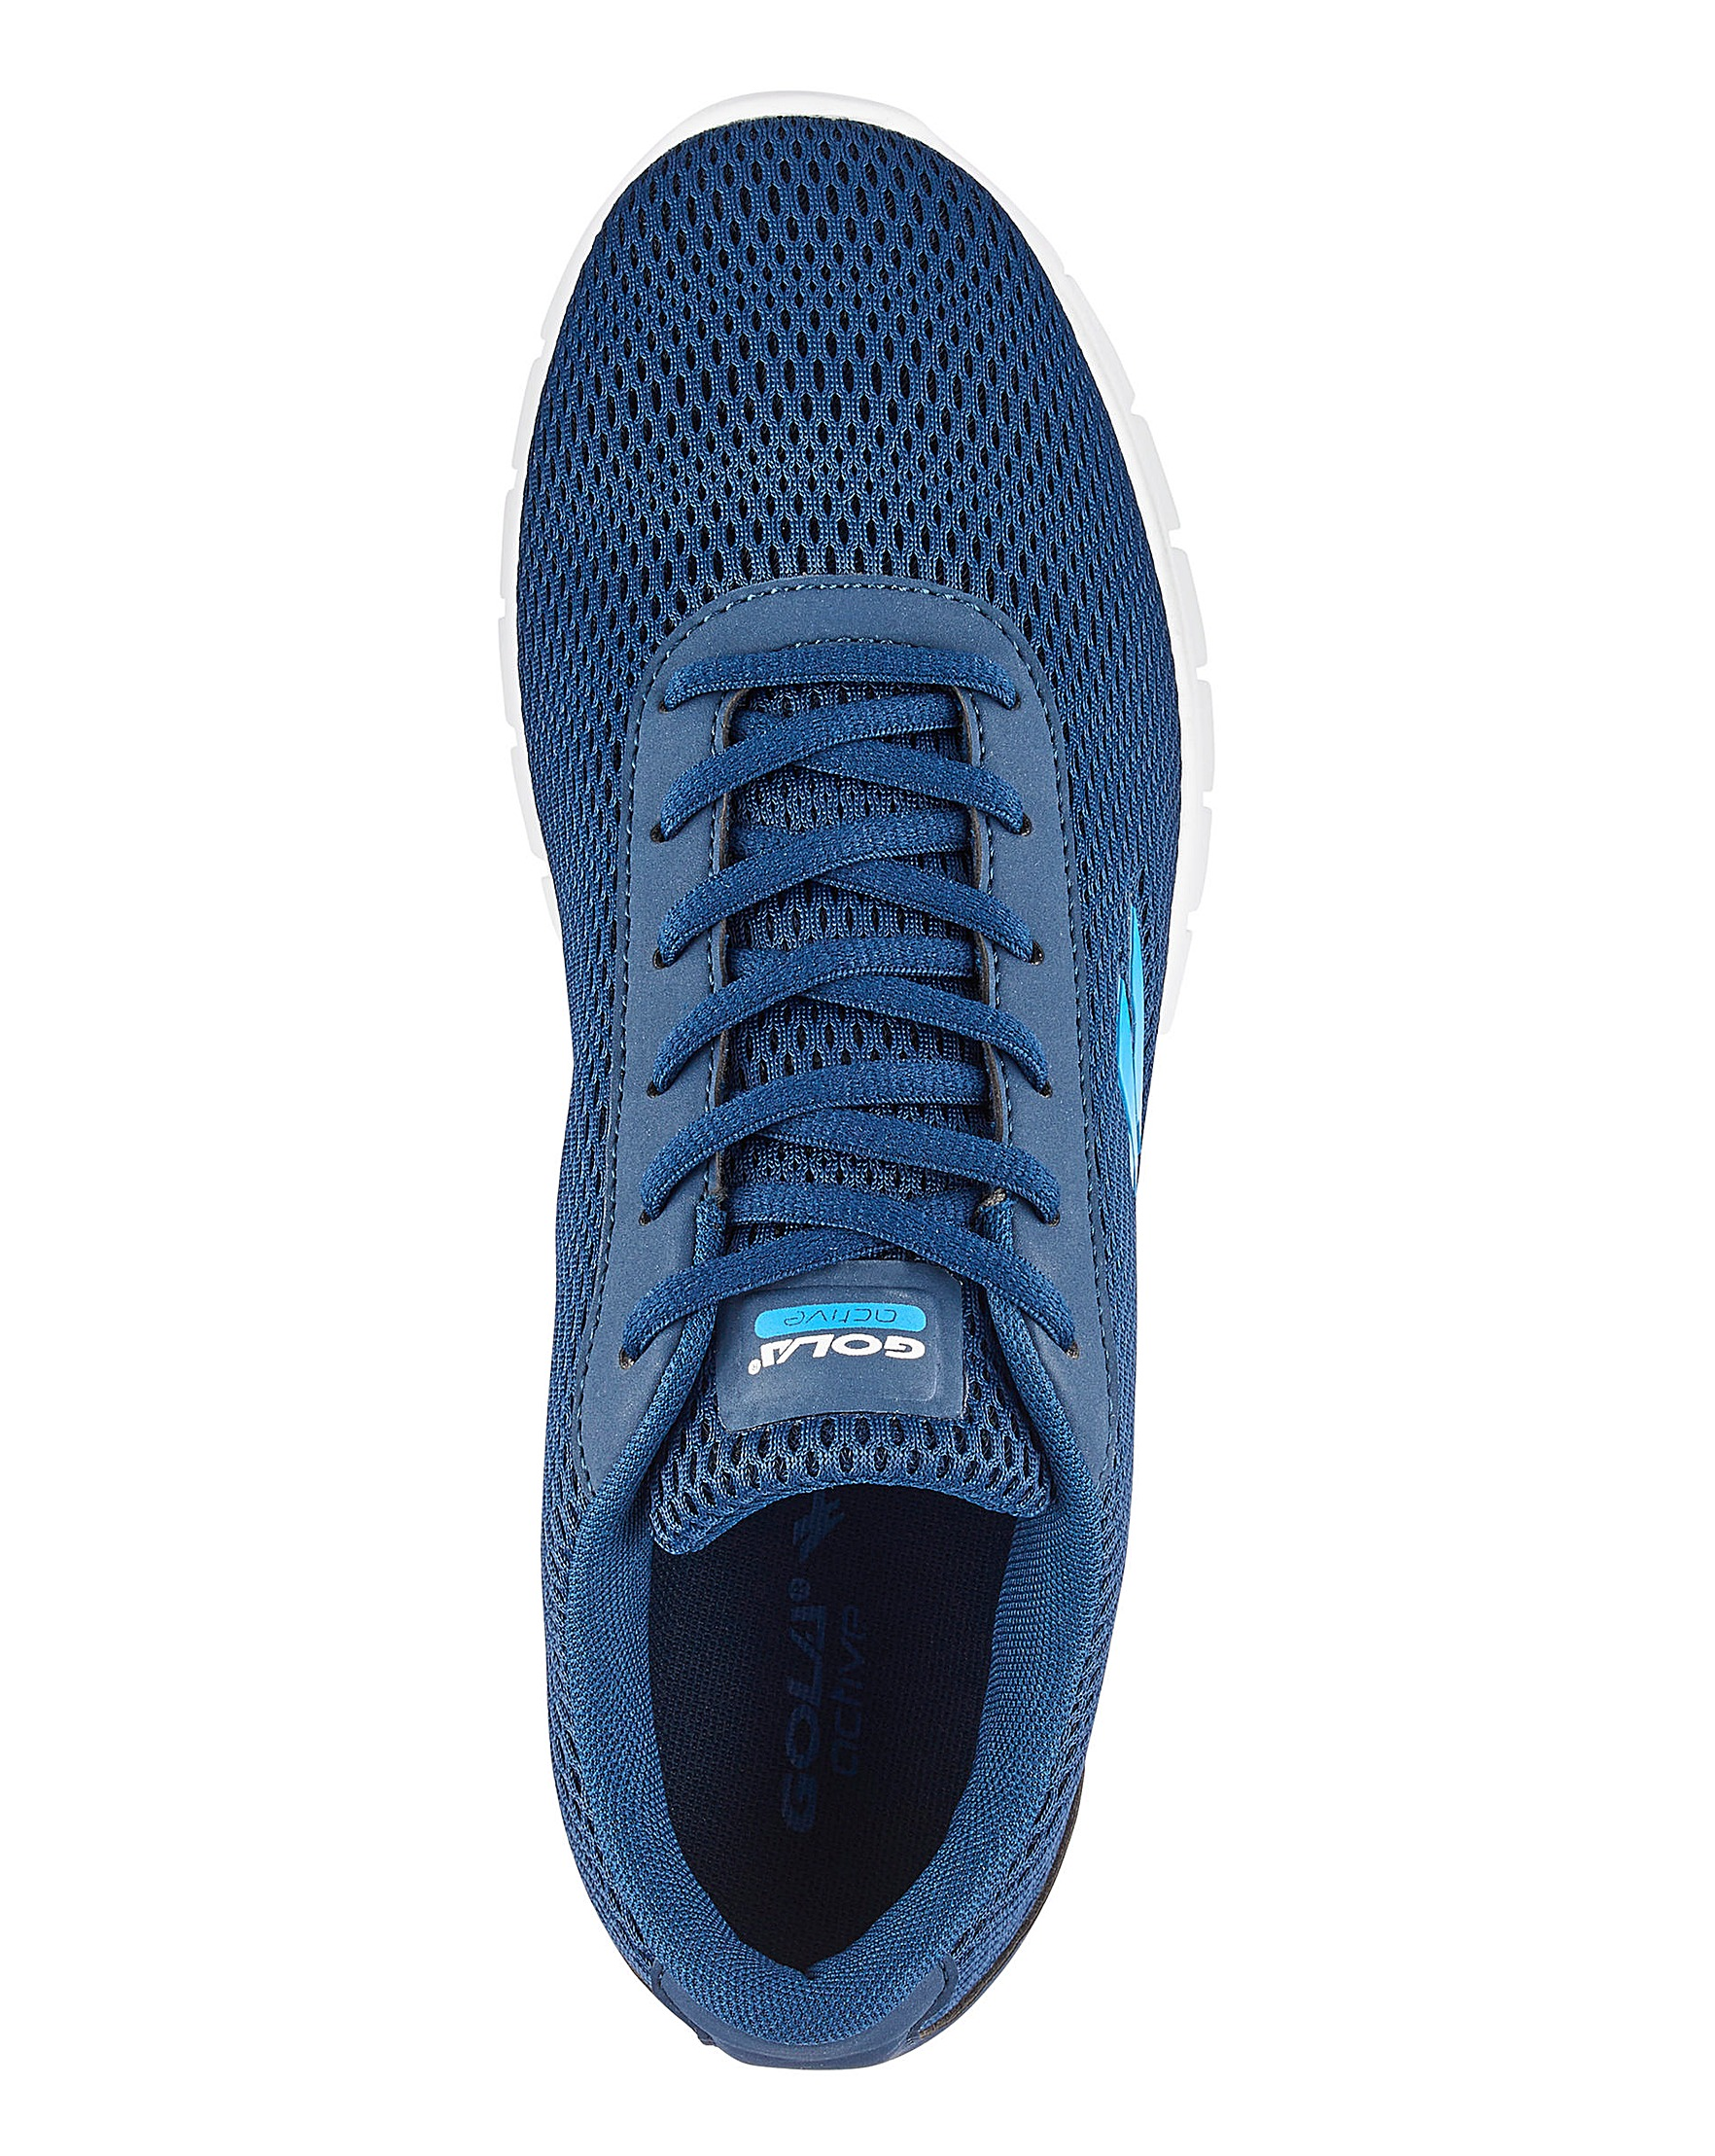 91c45f82913d Gola Sports Beta 2 Wide Fit Trainers